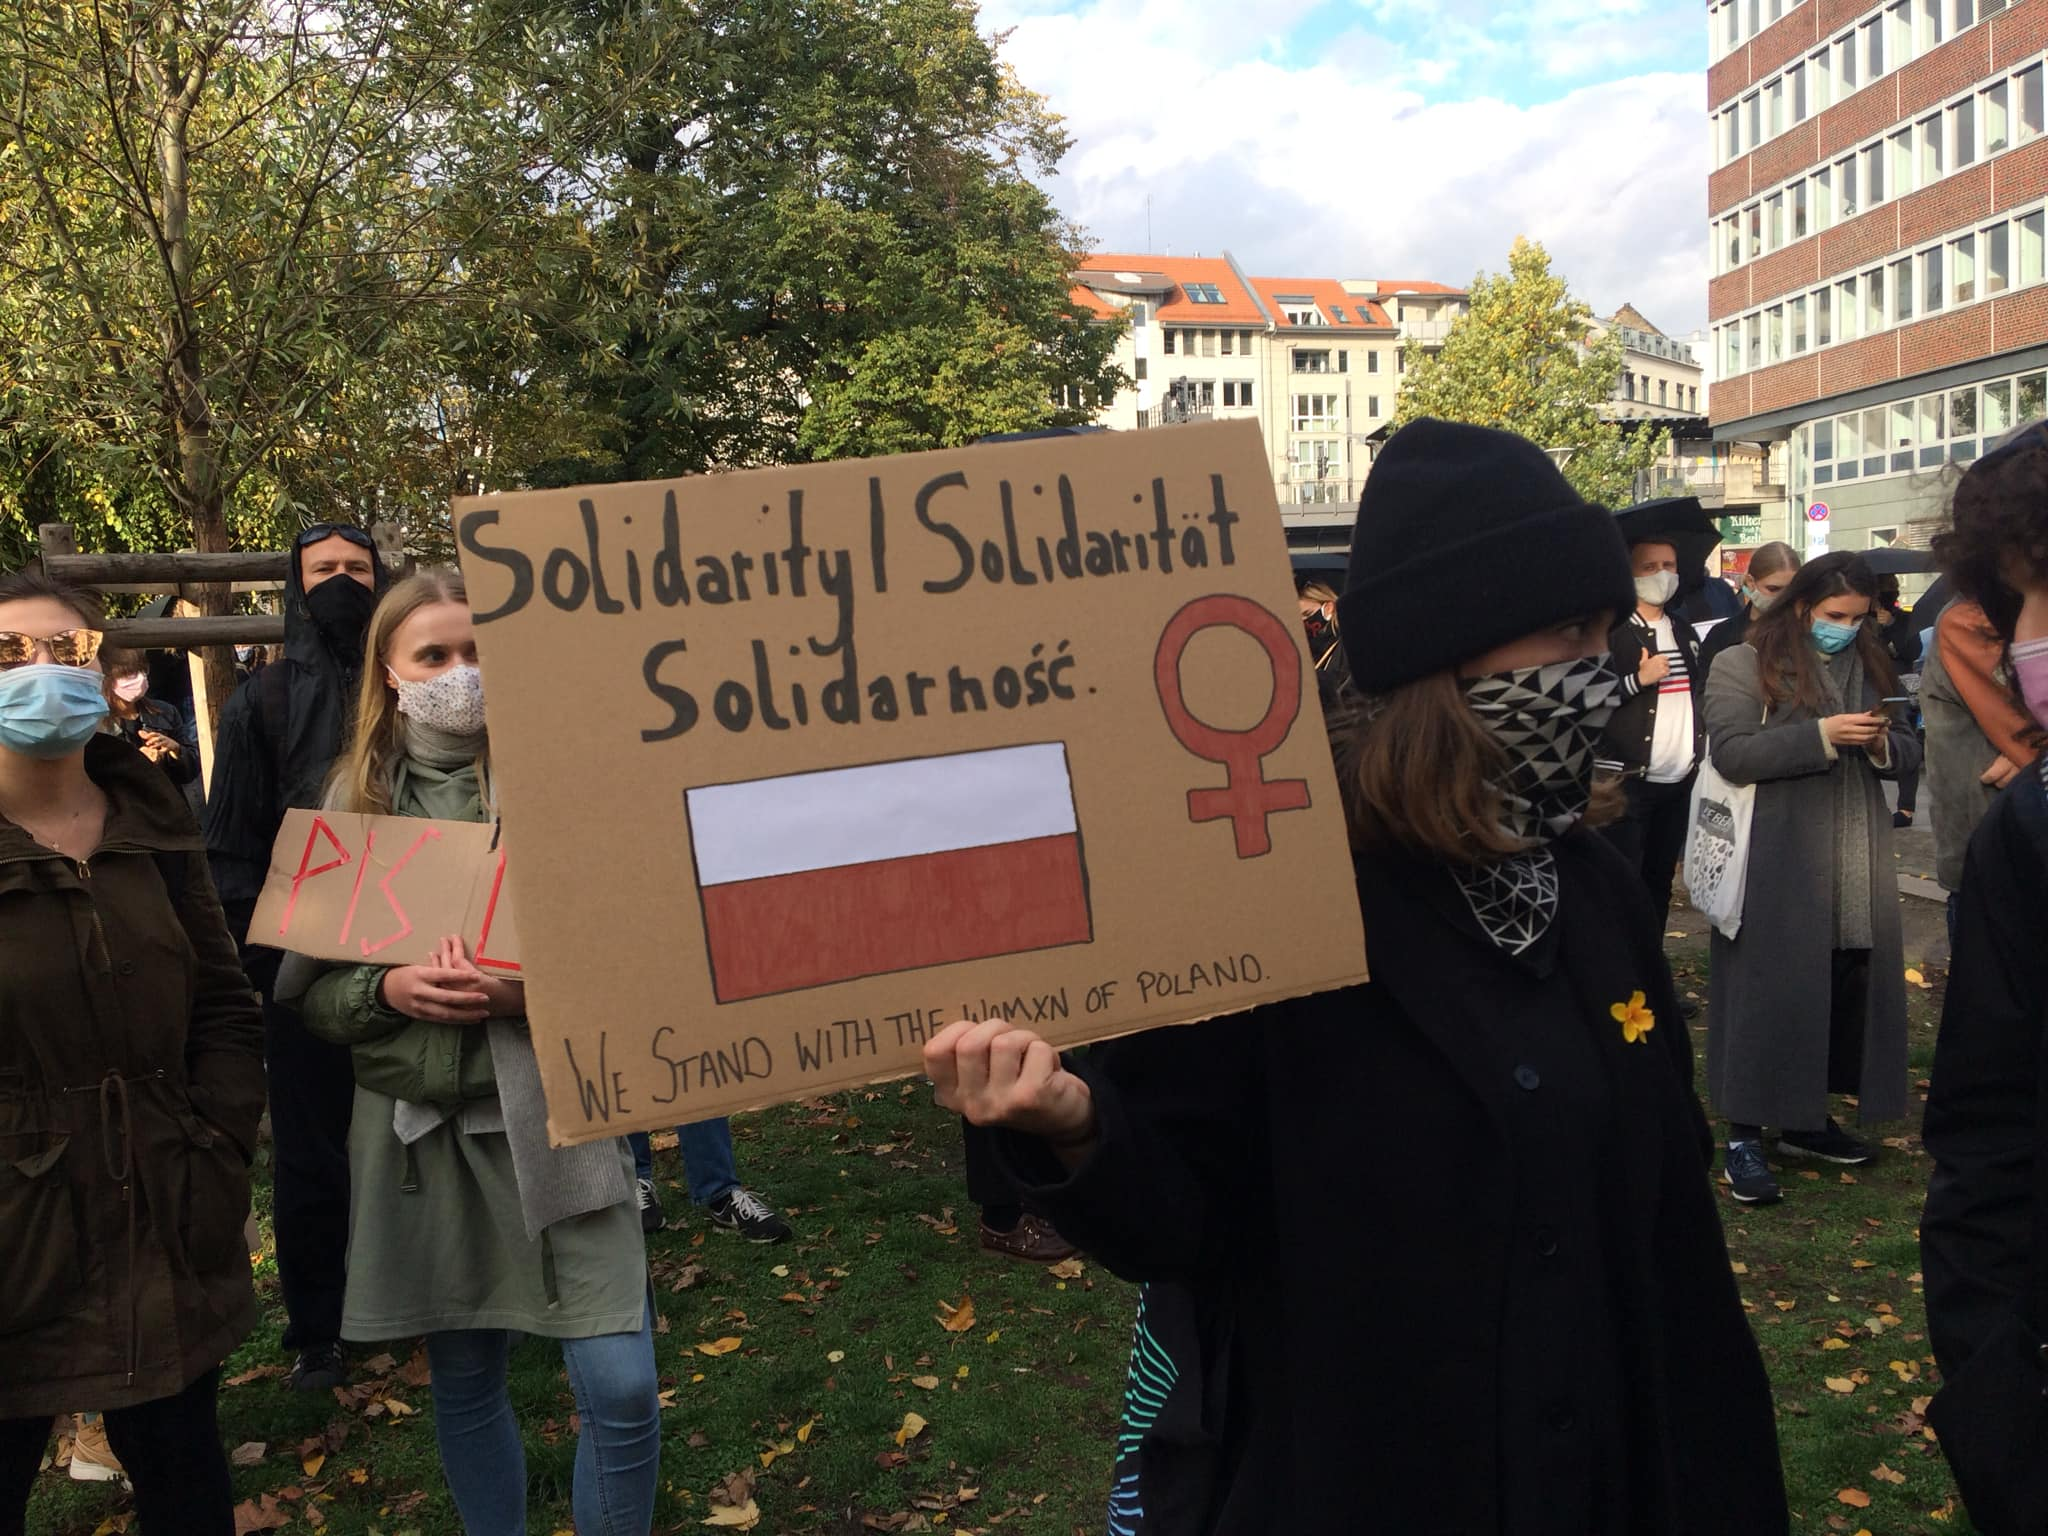 24.10.2020 Pro Choice Rally Against Abortion Ban in Poland!